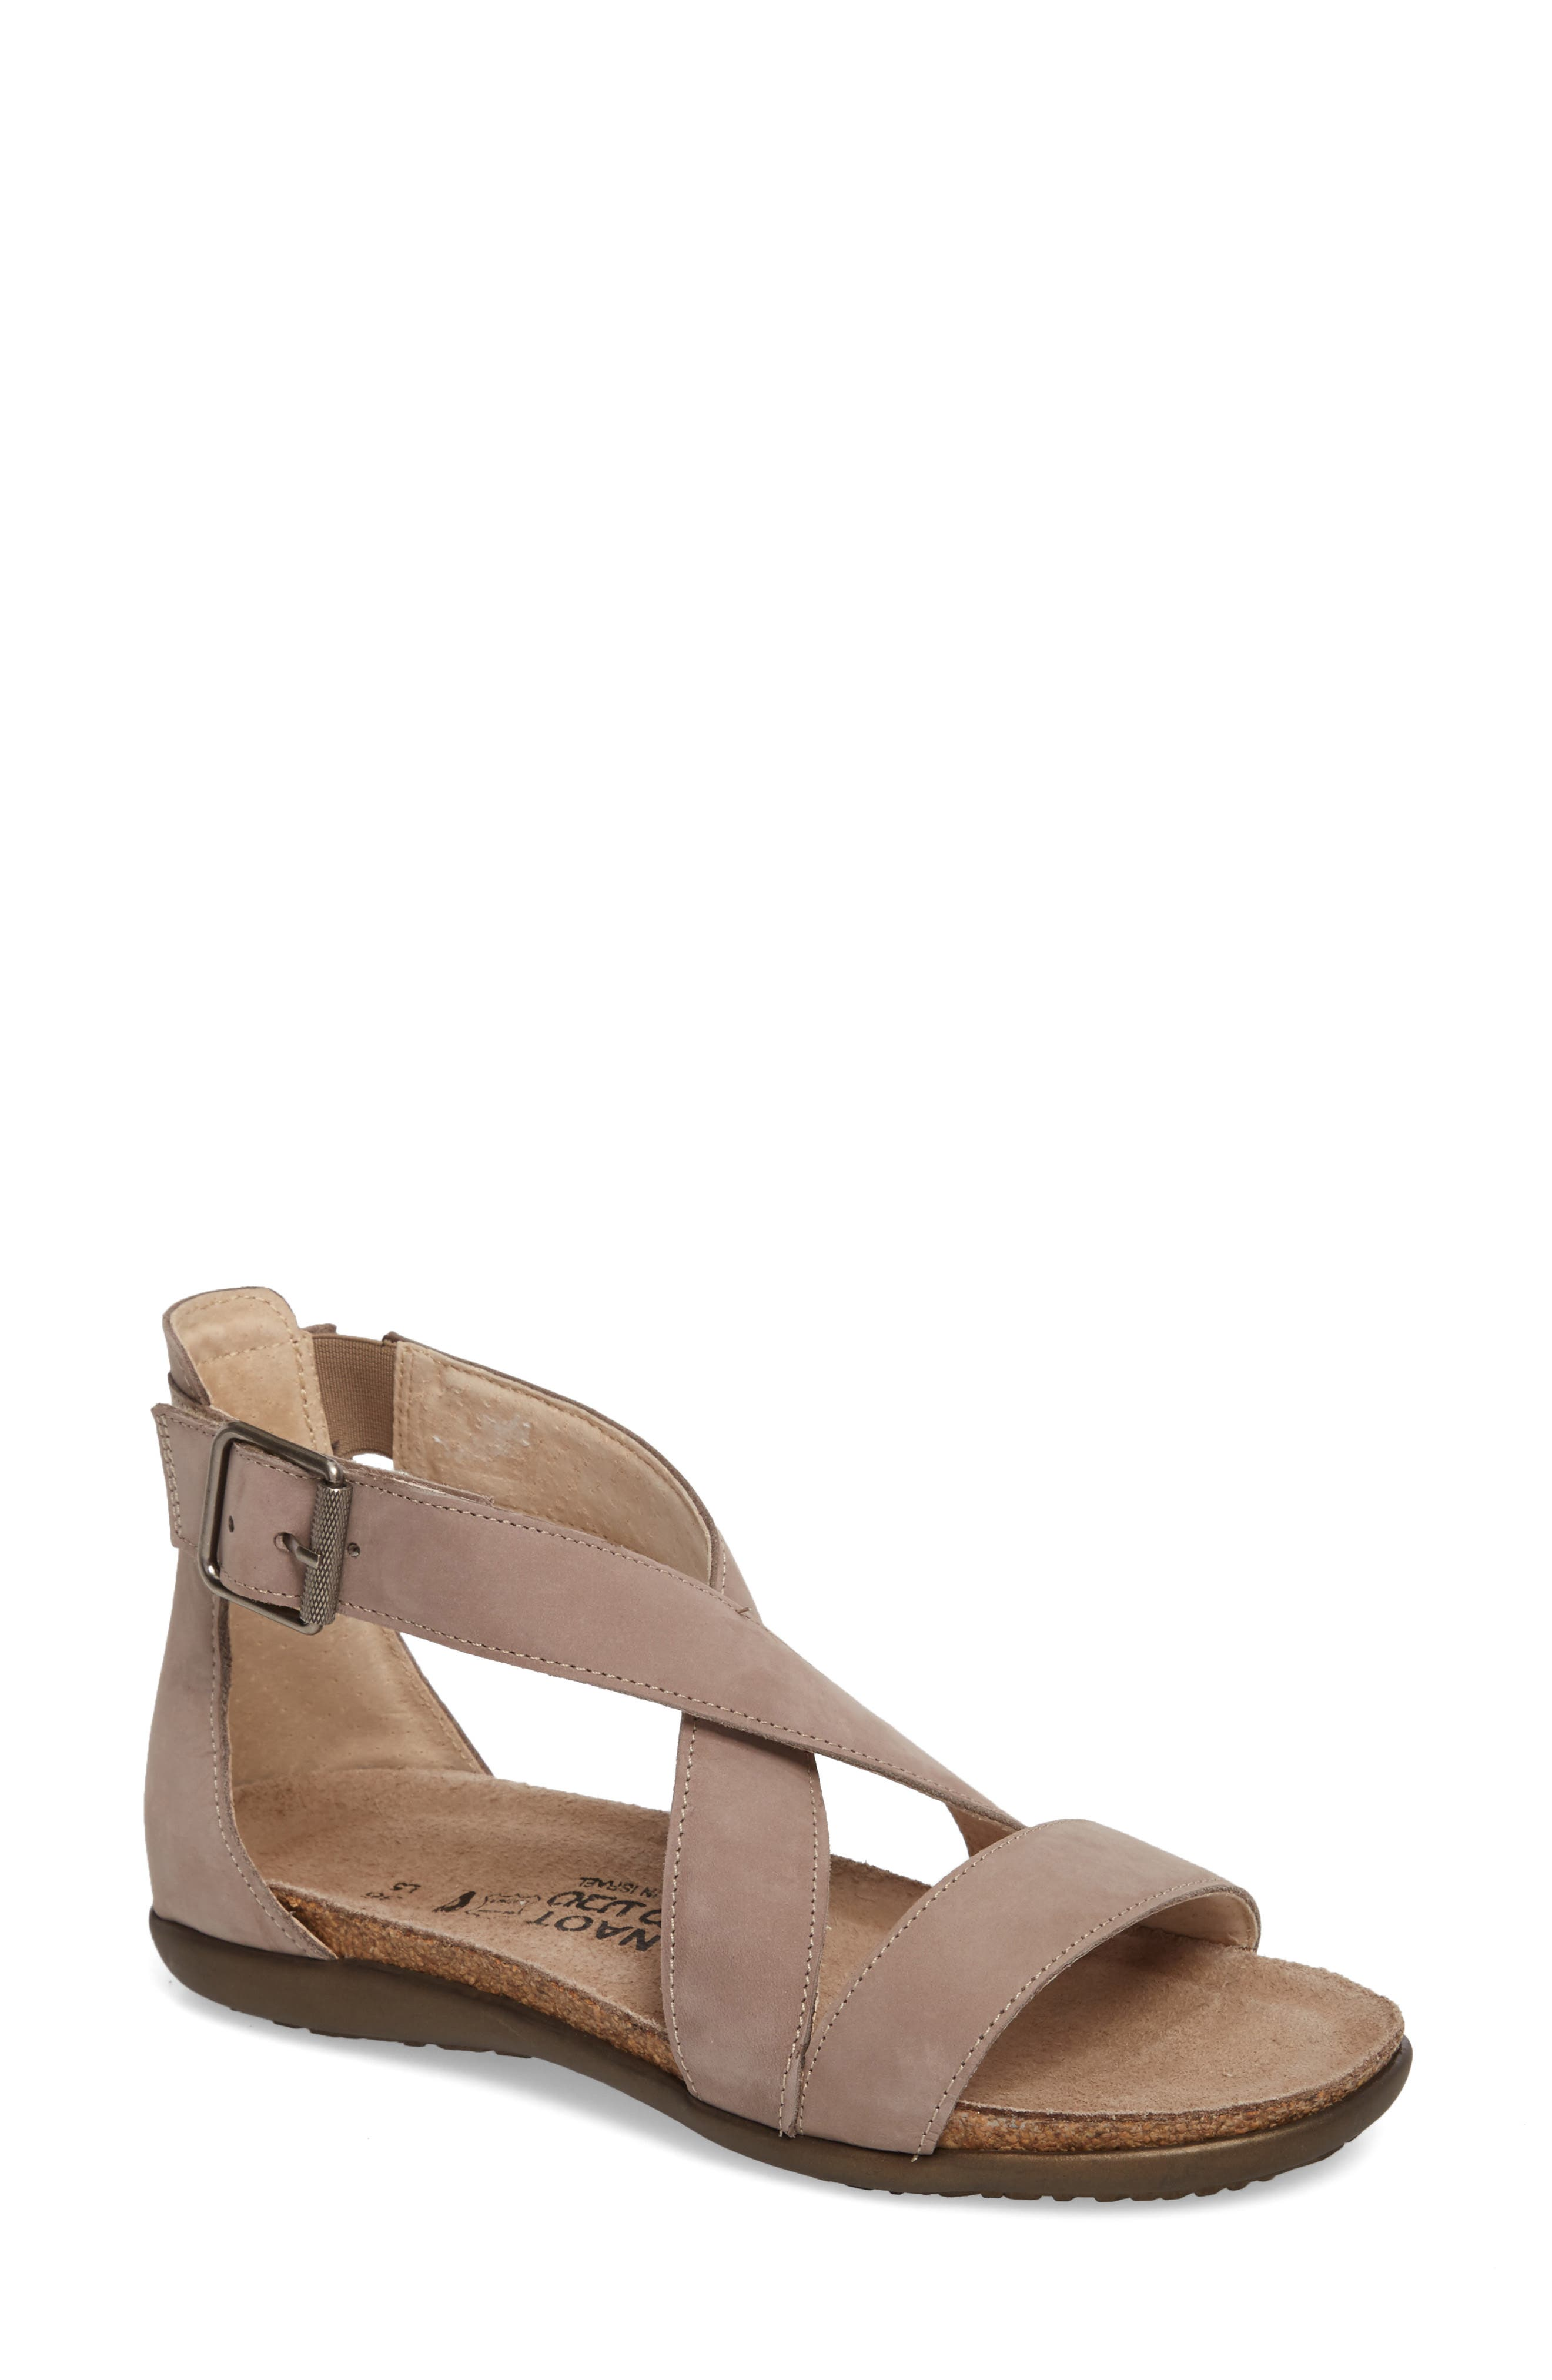 Sandals for Women On Sale in Outlet, Silver Mirror, Mirror Leather, 2017, 3.5 Prada